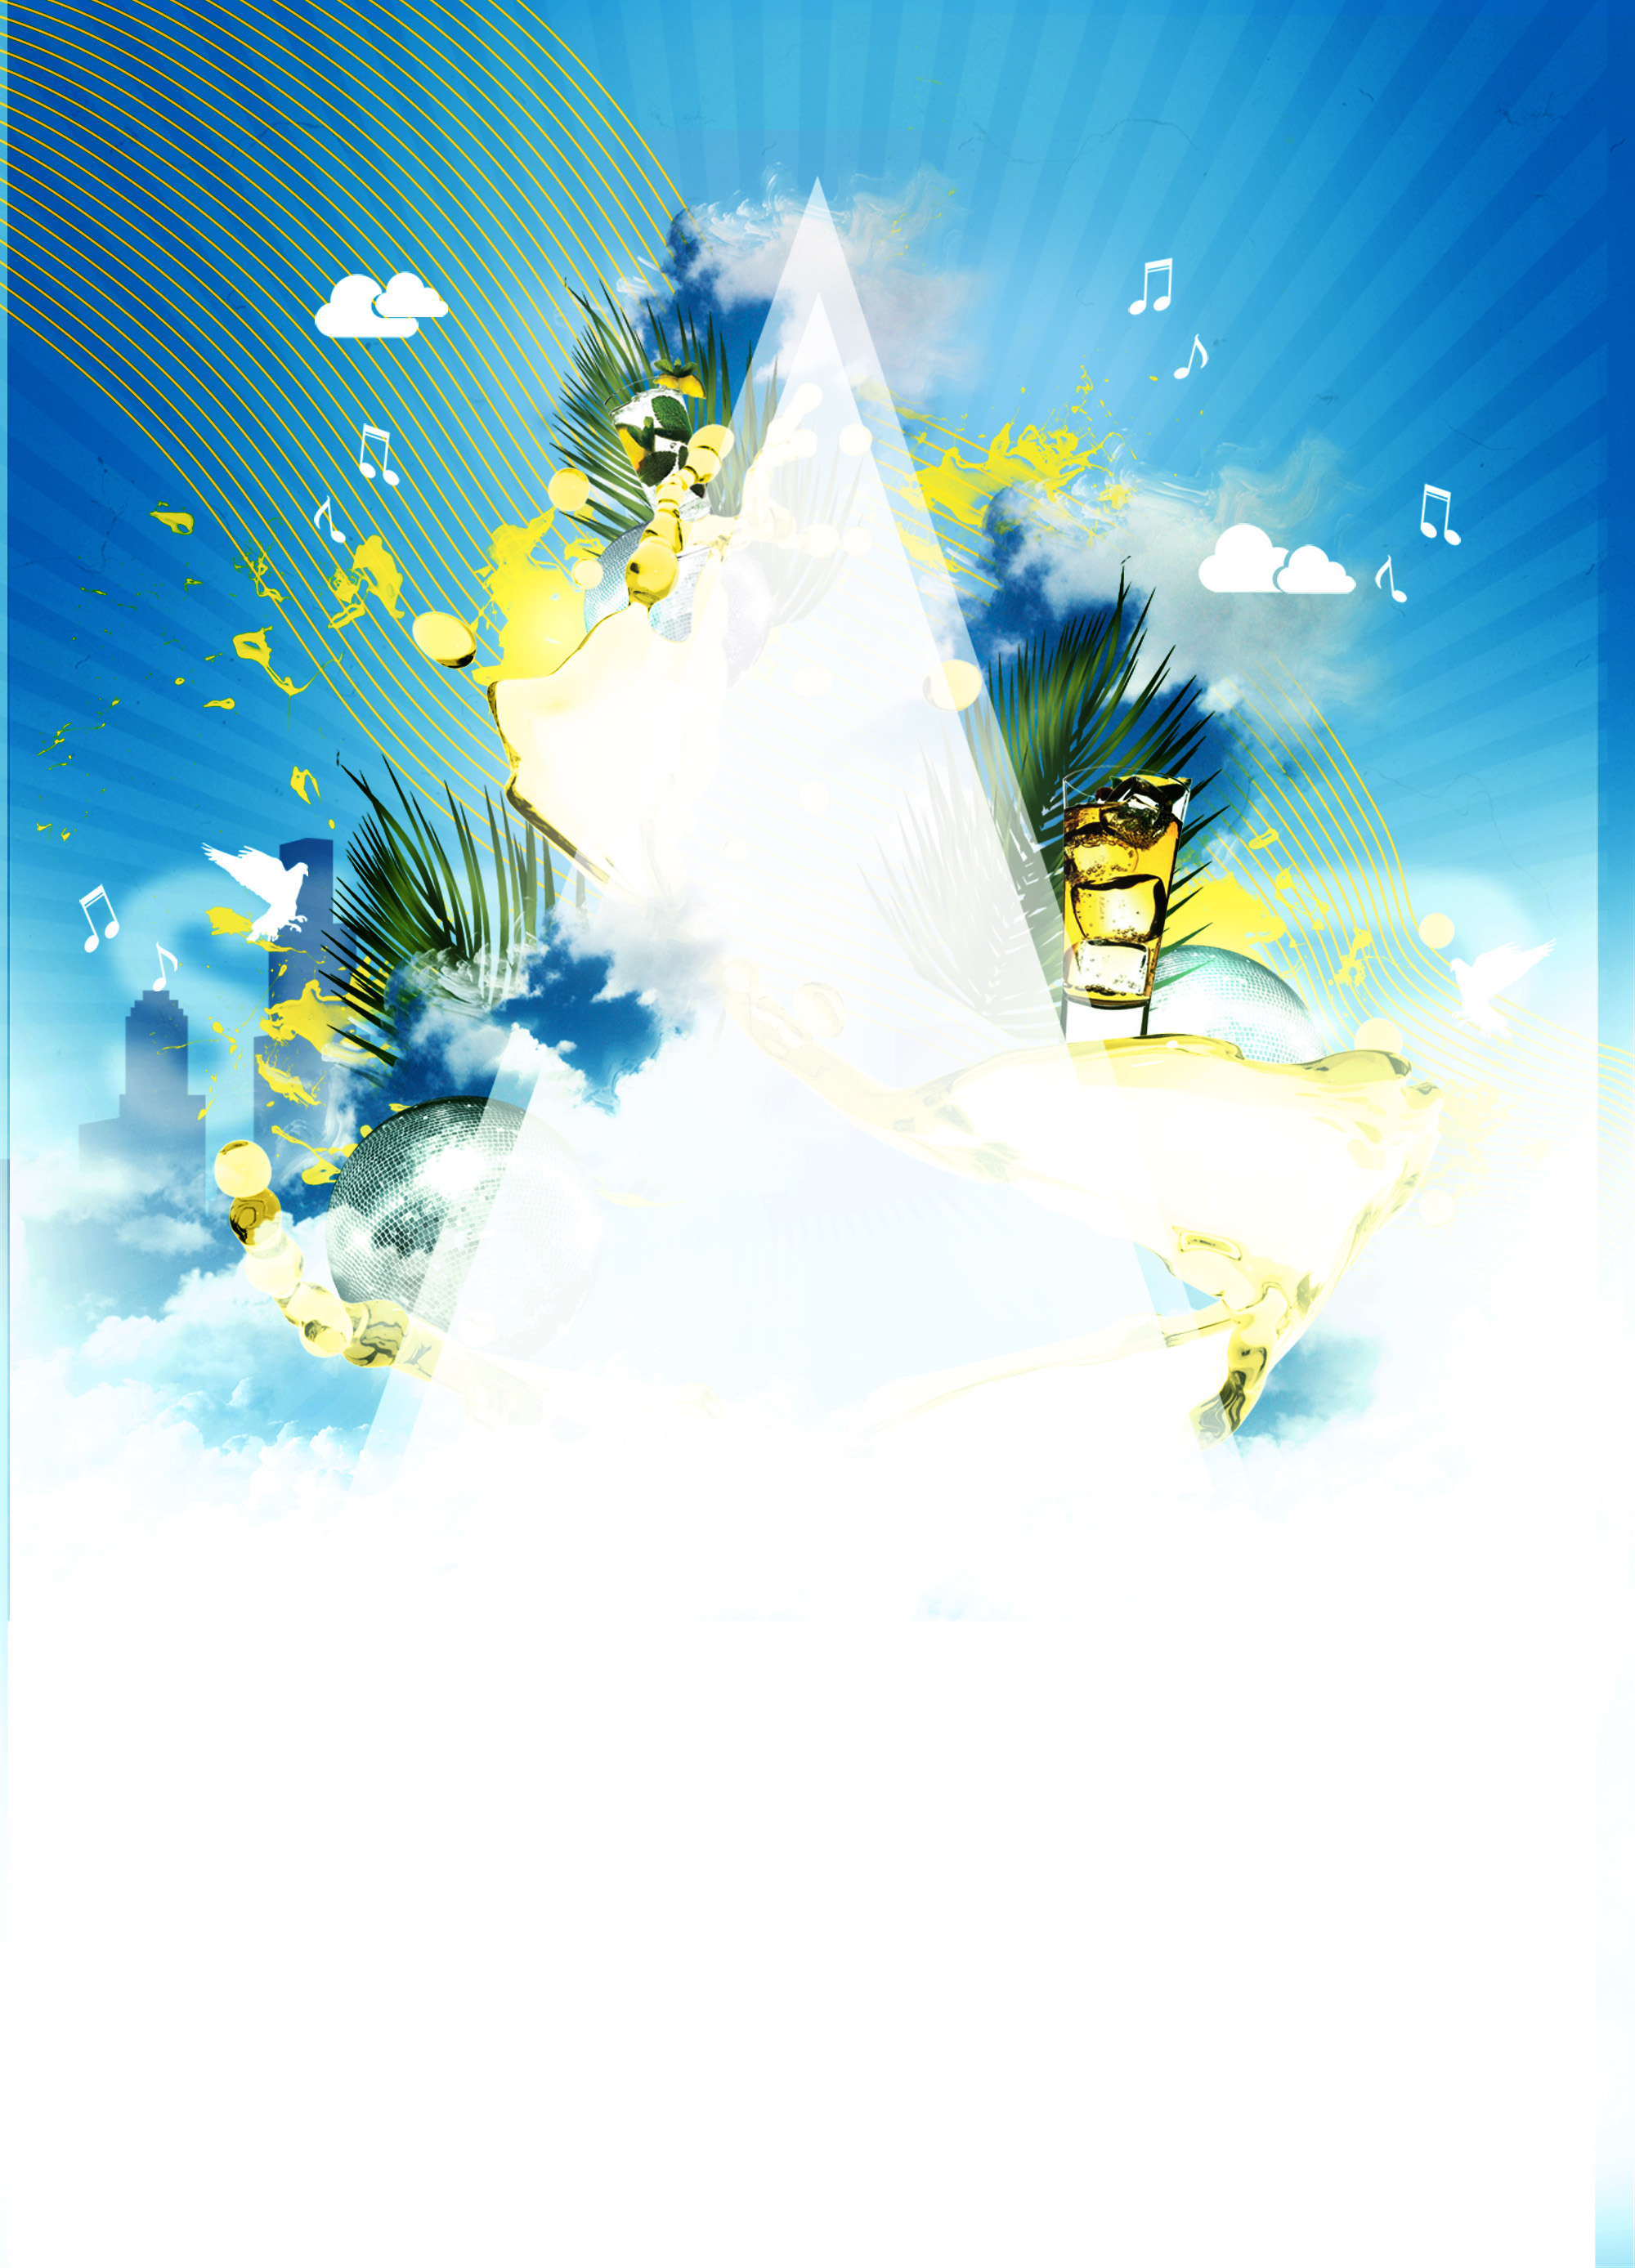 summer beach party poster background material  summer  beach  party background image for free